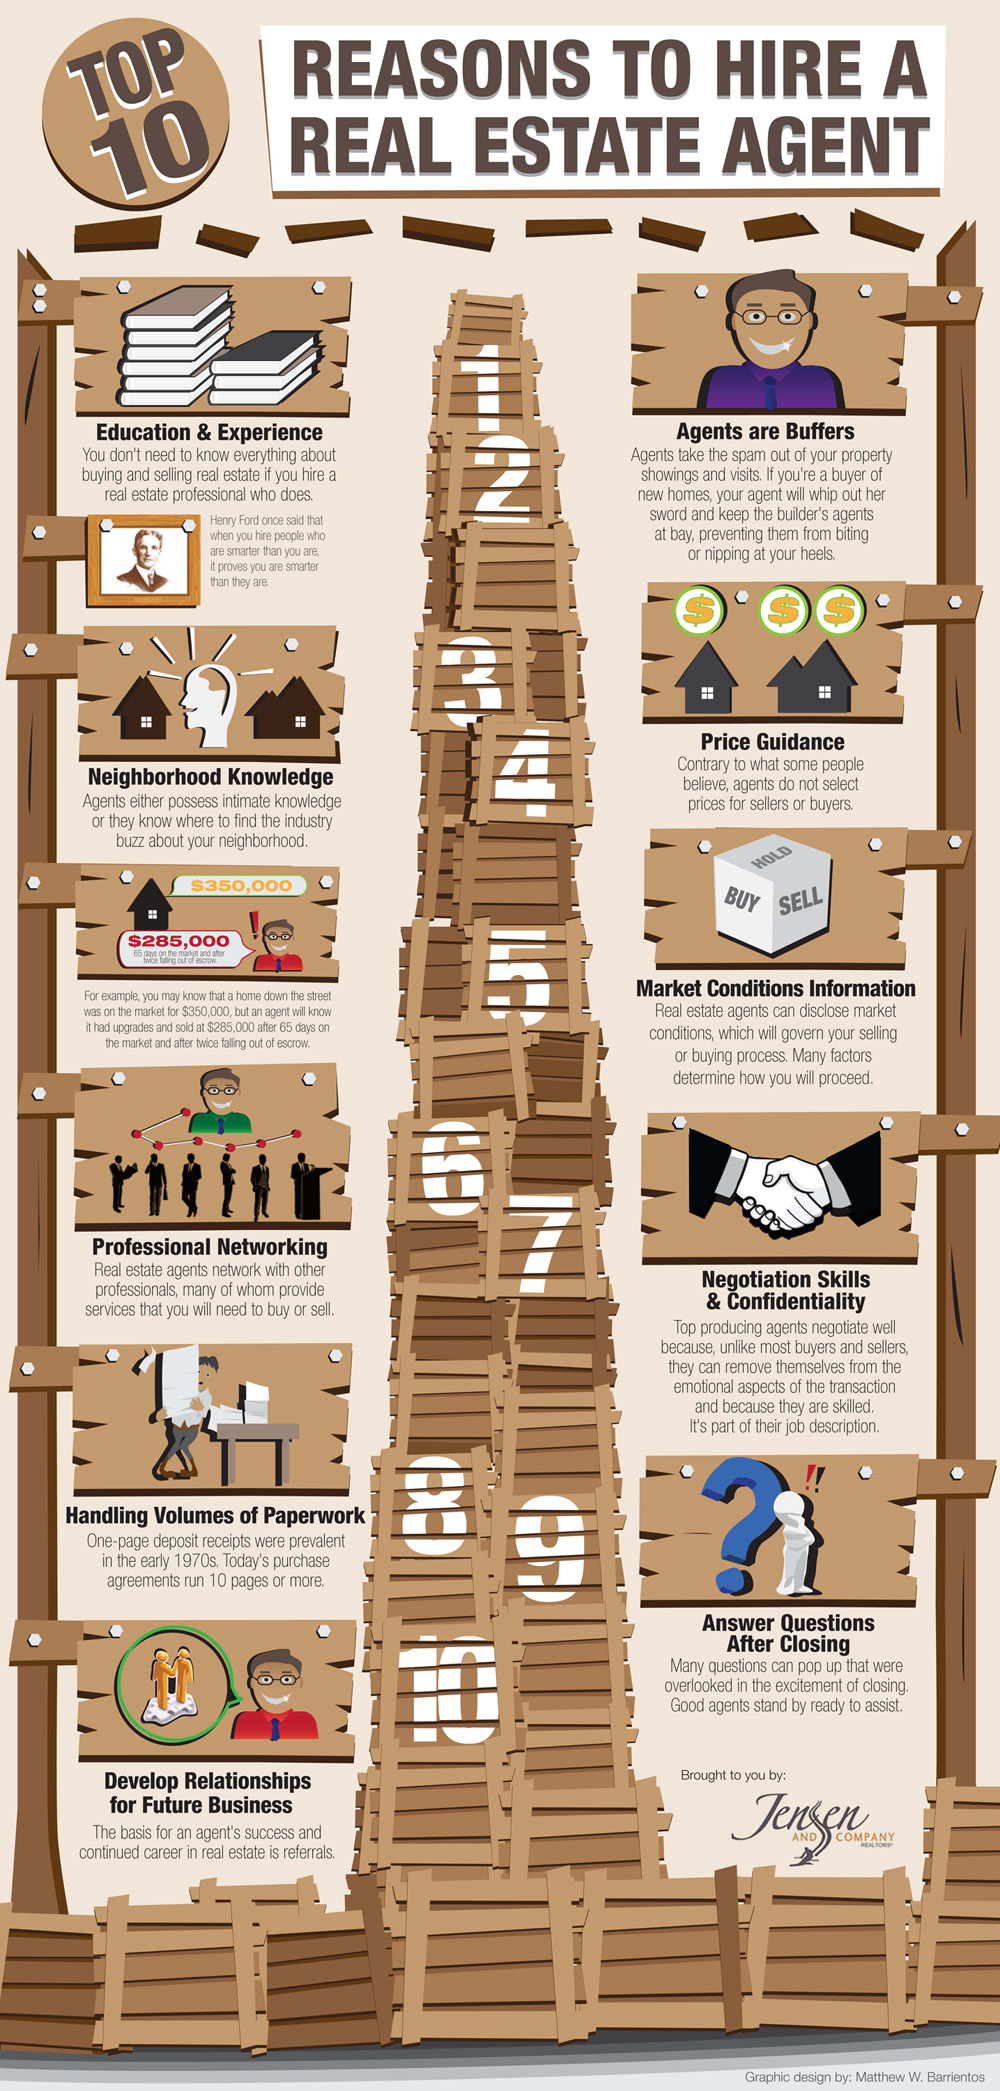 top 10 reasons to hire a real estate agent infographic keeping